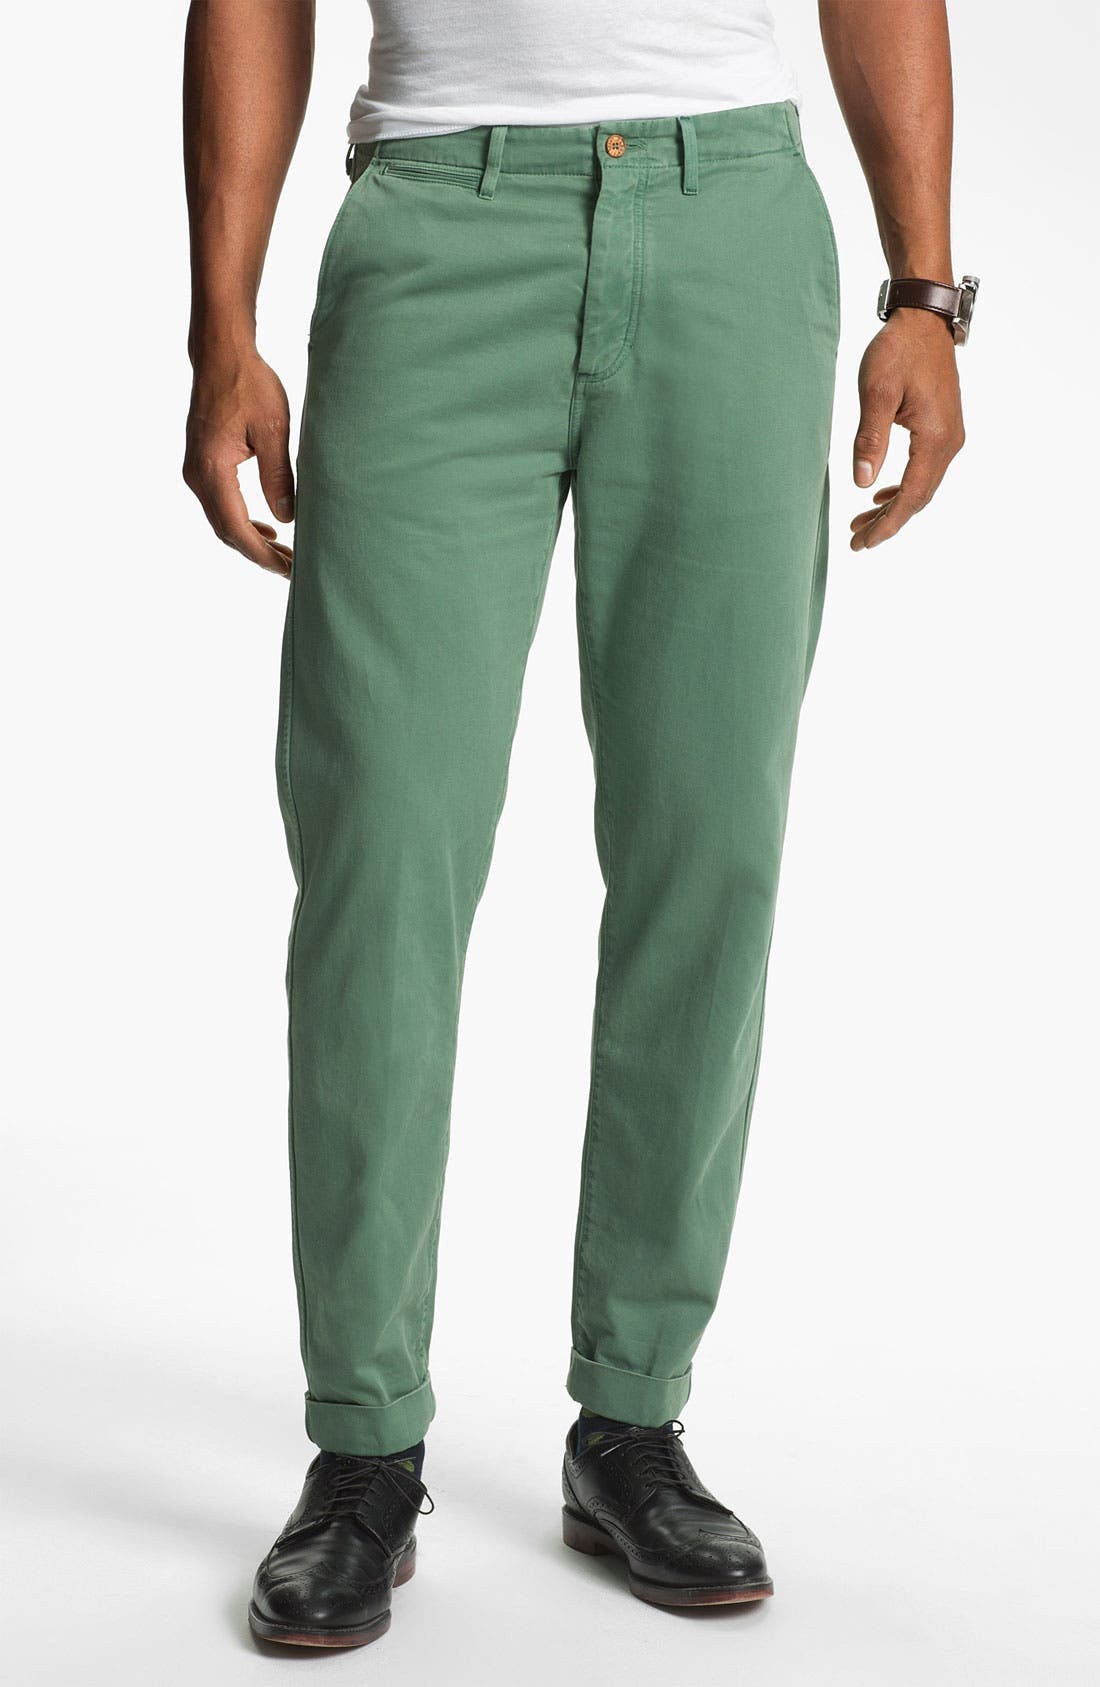 Alternate Image 1 Selected - Levi's® Made & Crafted™ 'Drill' Cotton Chinos